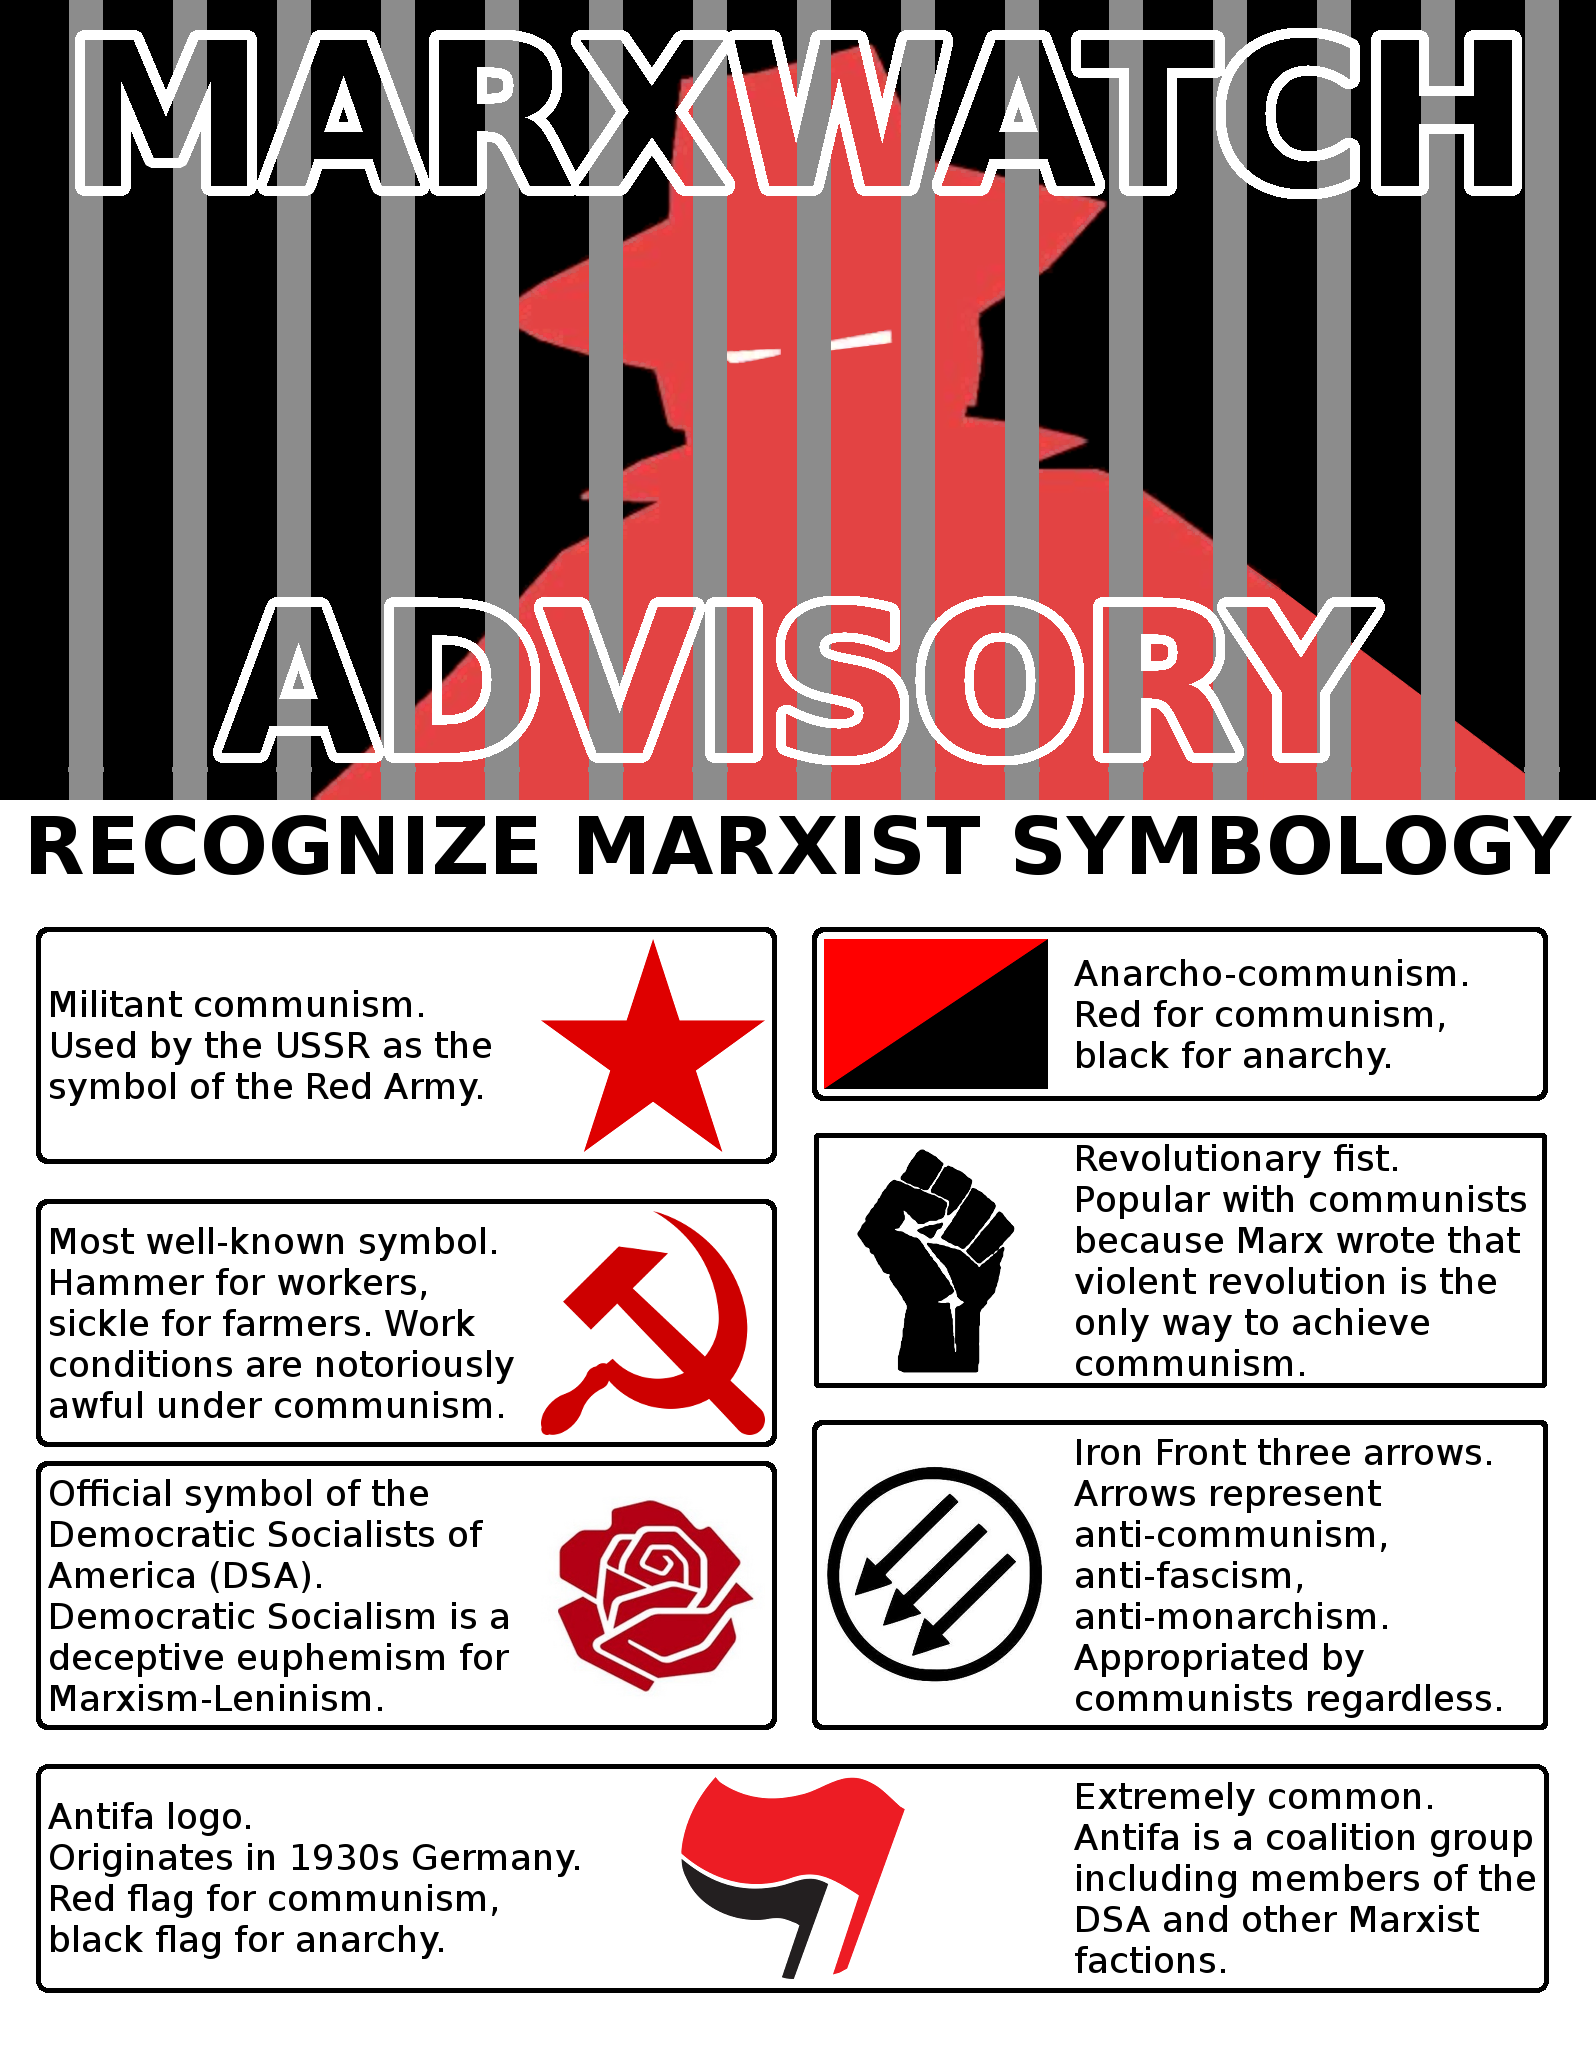 Advisory: Recognize Marxist Symbology